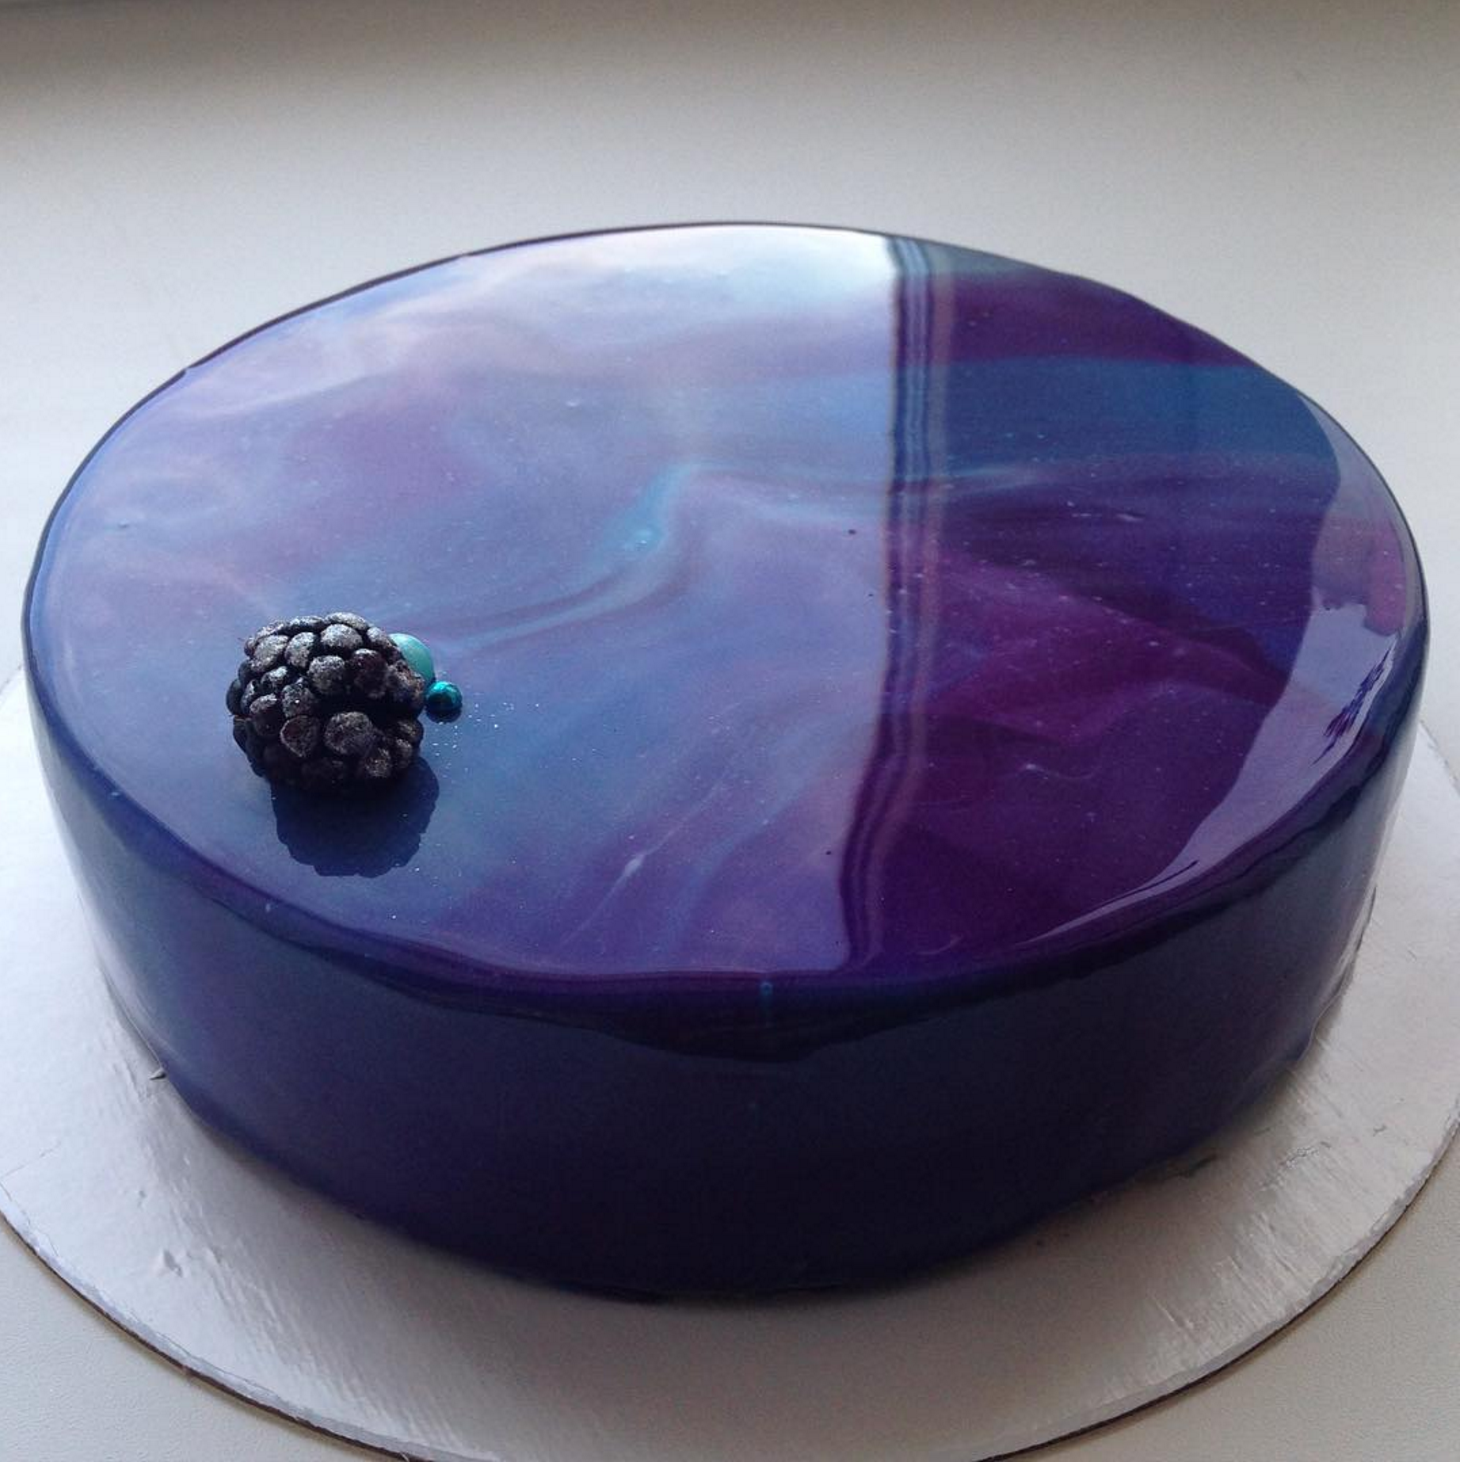 Stunning Handmade Cakes Flawlessly Decorated With Highly